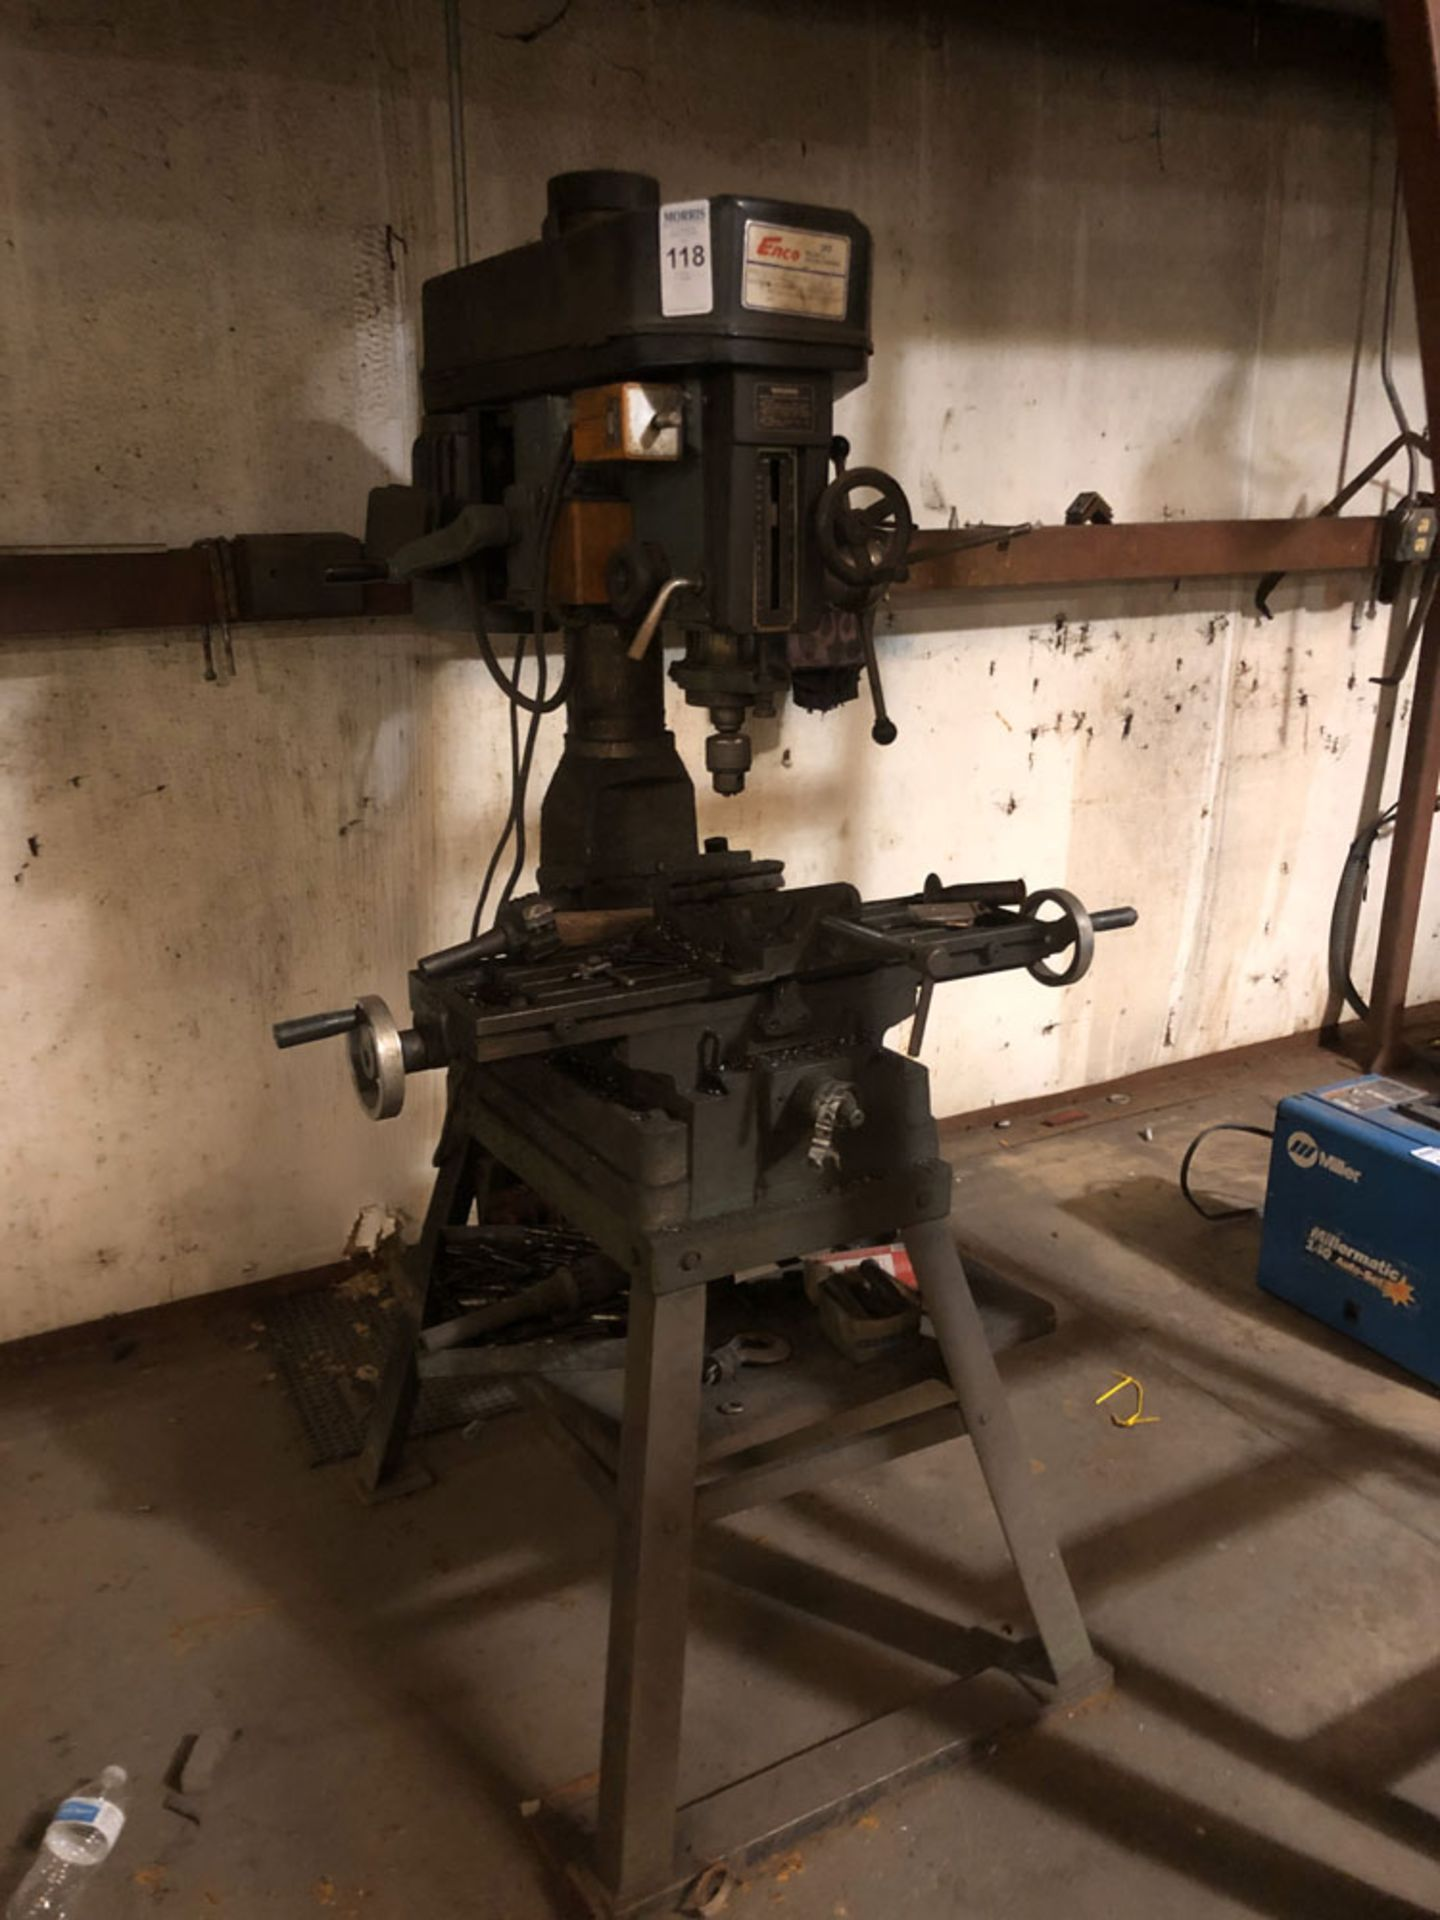 Lot 118 - Drill Press, Enco Model 105-1280 Ser.No. 893156